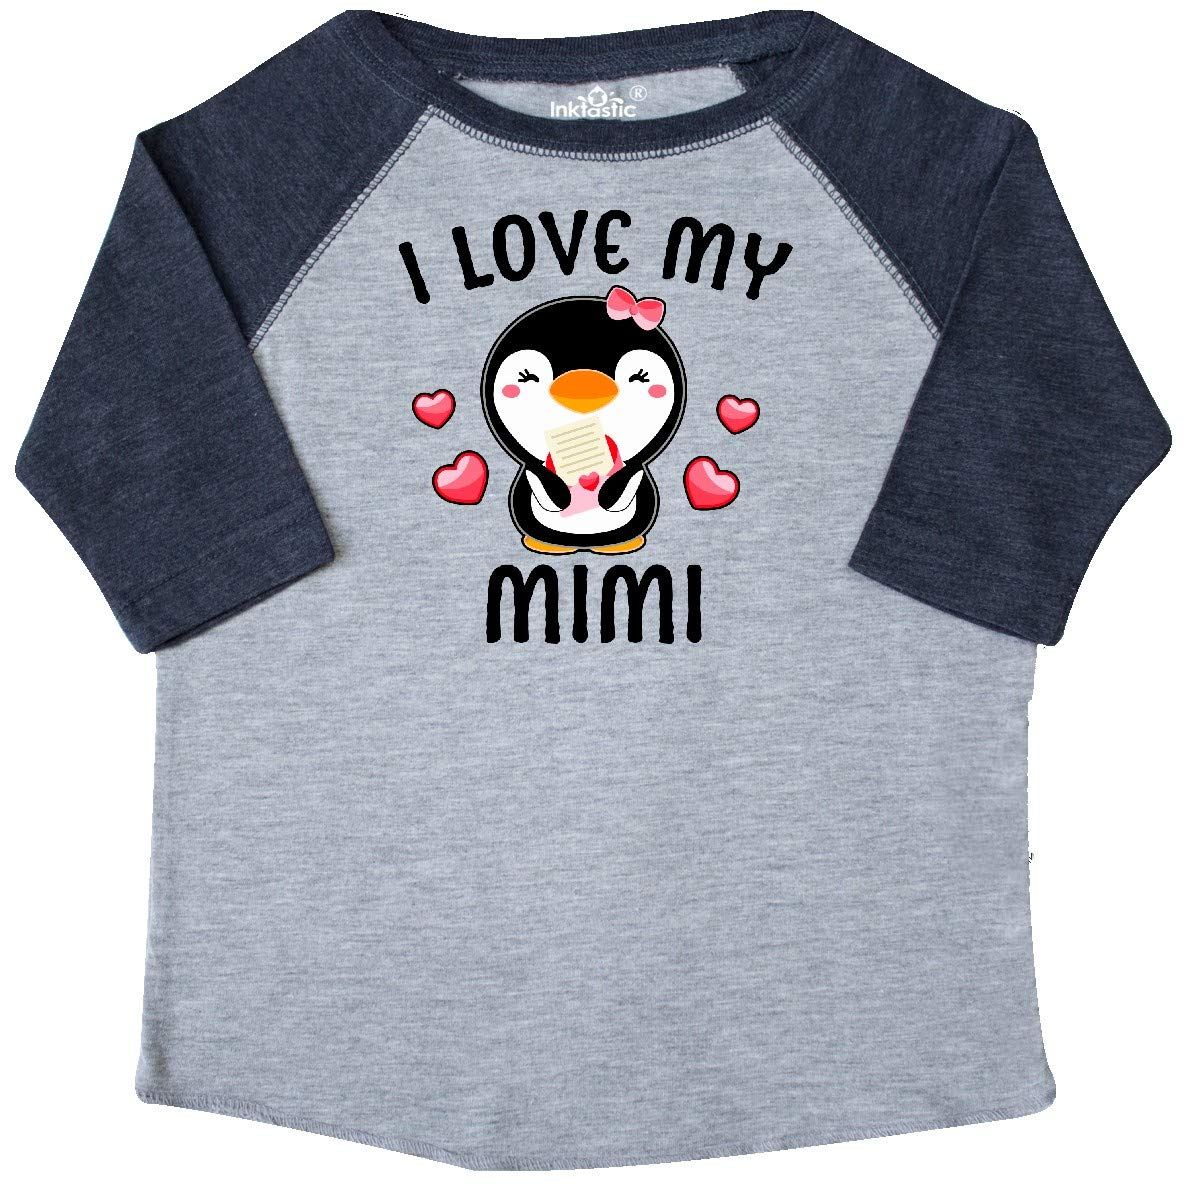 inktastic I Love My Mimi with Cute Penguin and Hearts Toddler T-Shirt